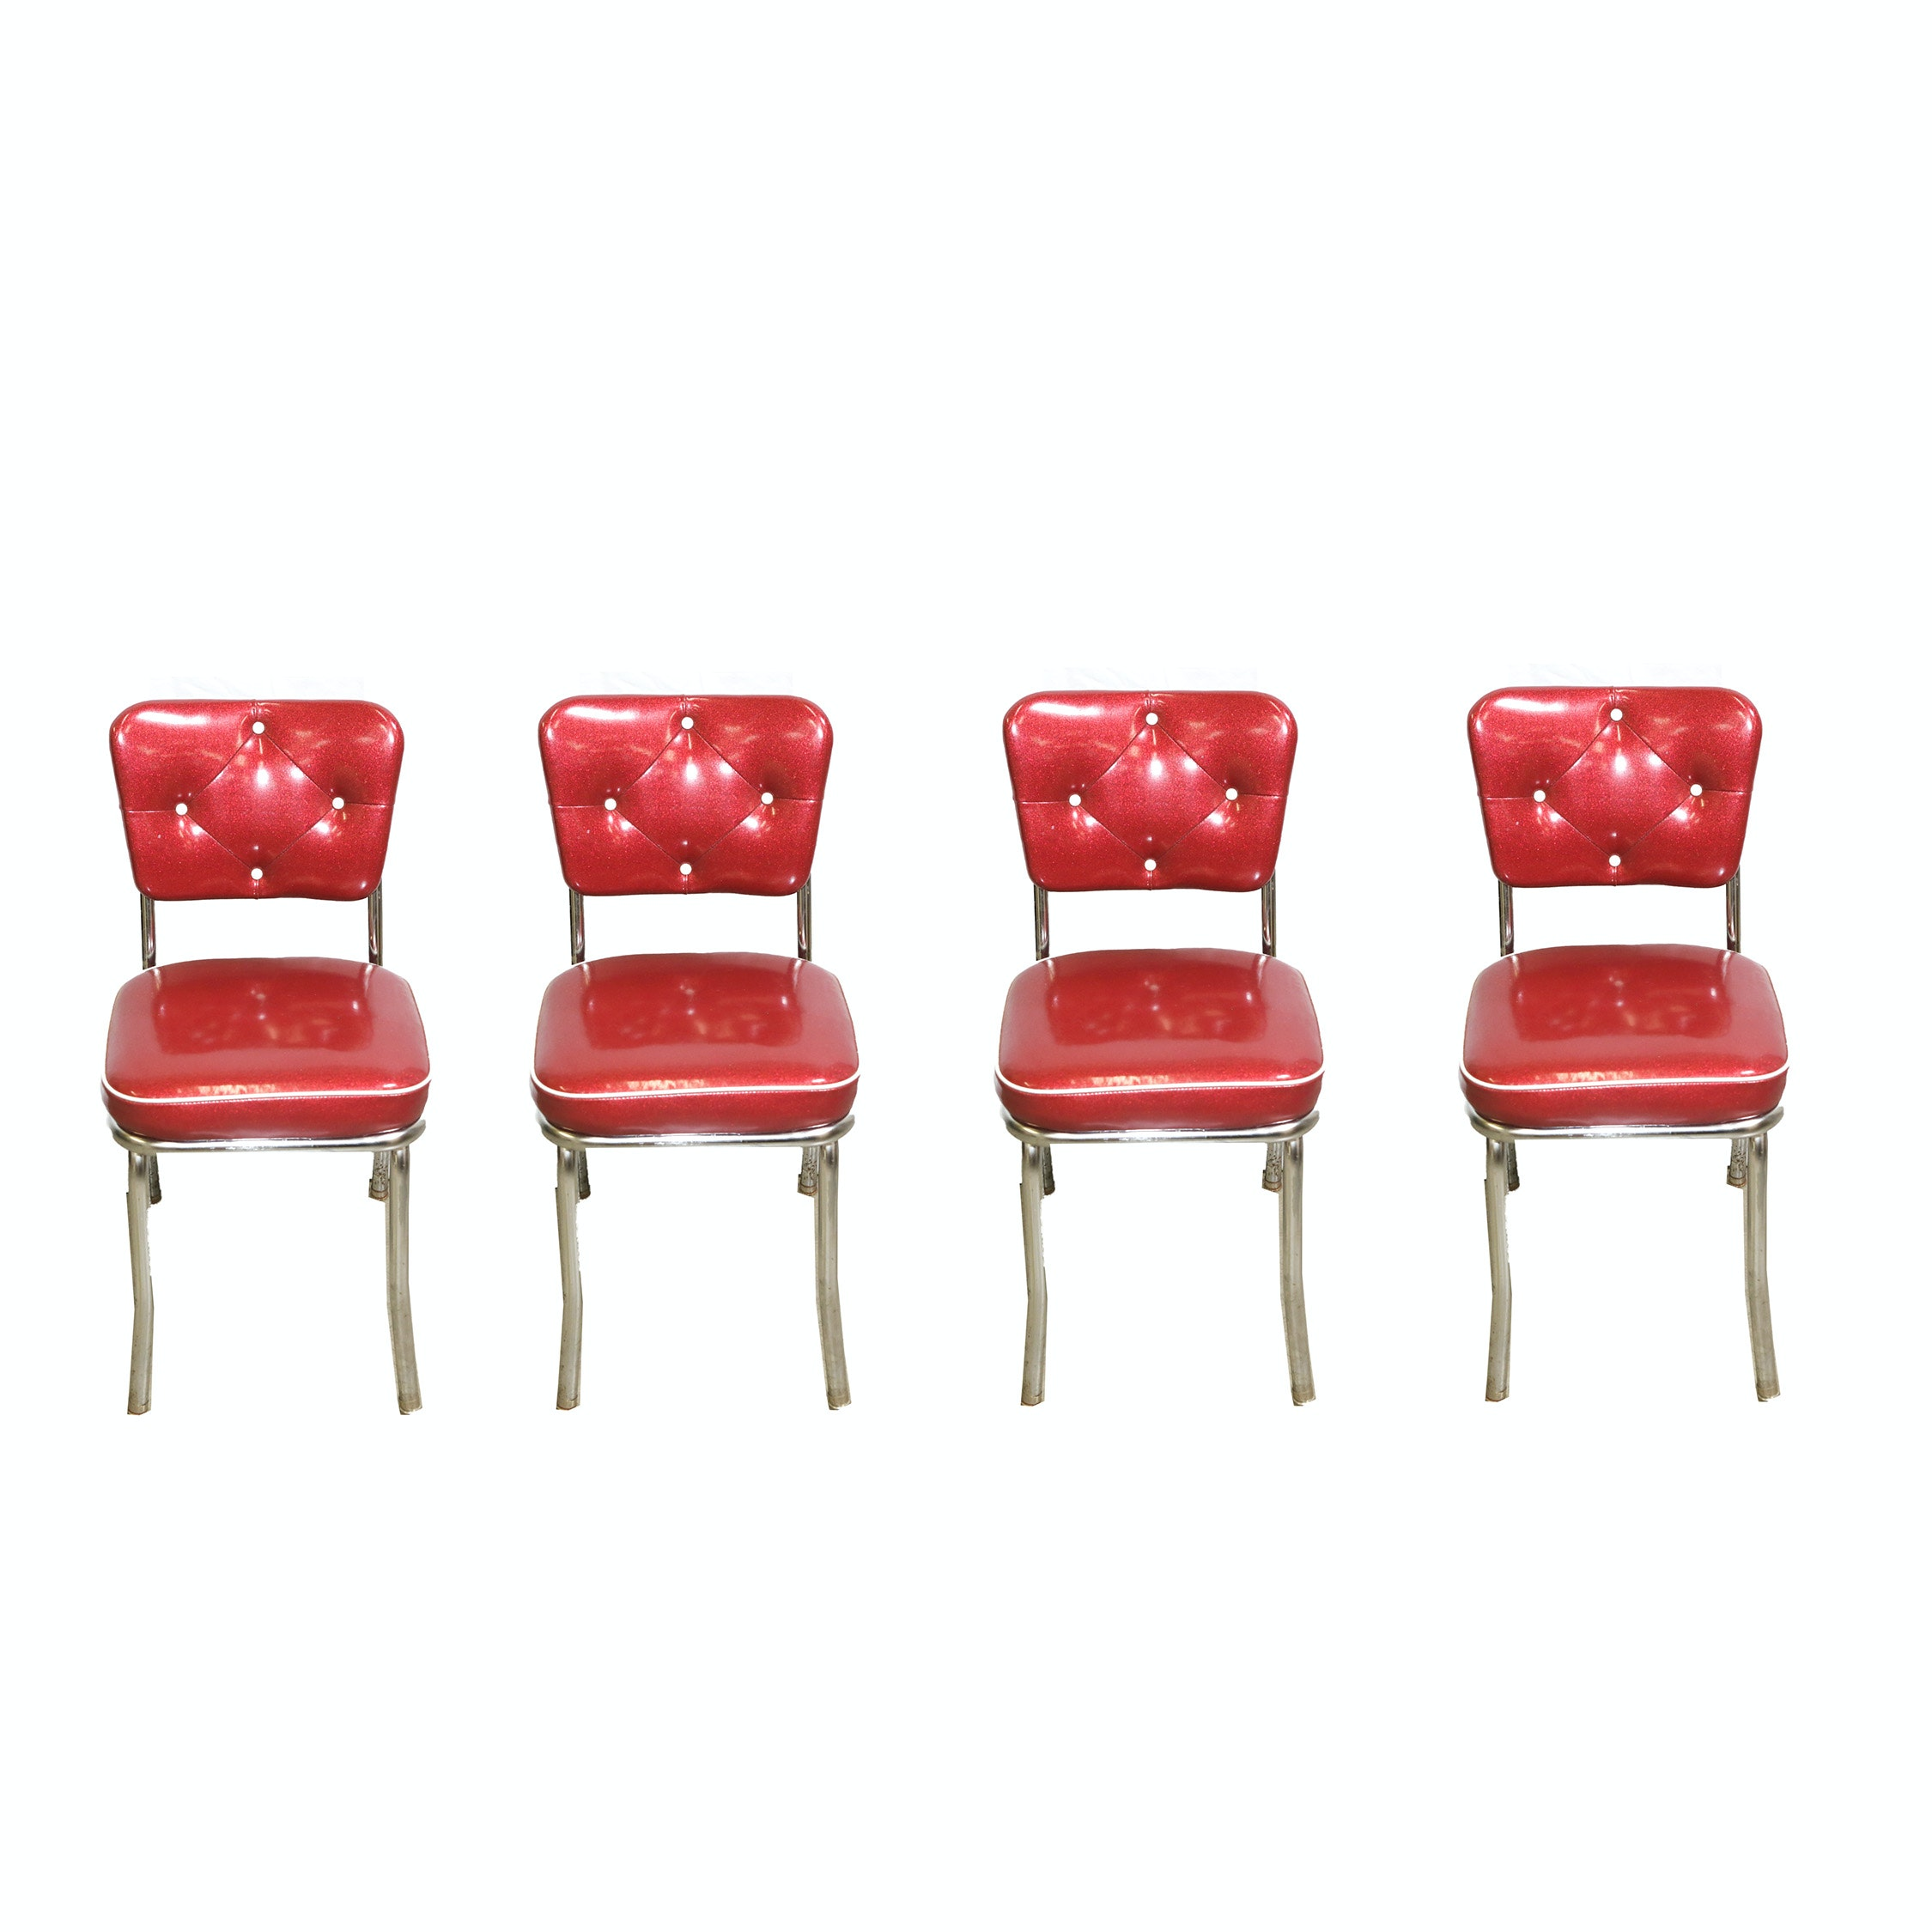 Red and White Diner Style Chairs